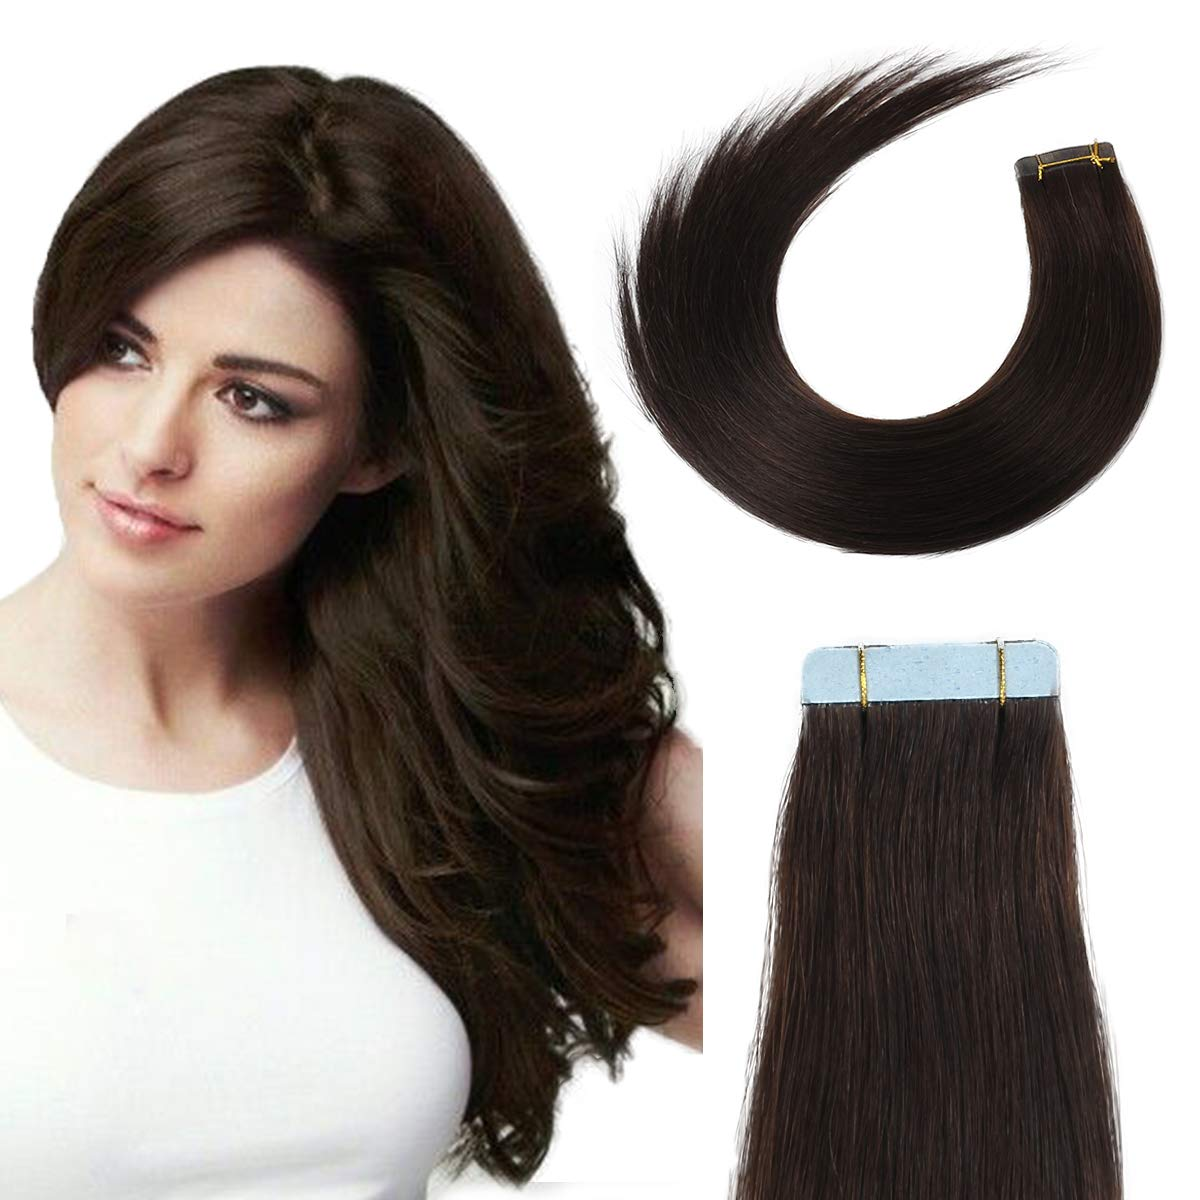 Tape in Hair Extensions Human Hair 16 inch 40g/pack 20pcs Seamless Skin Weft Remy Straight Hair 2# Dark Brown ... by BEAUTY ON LINE